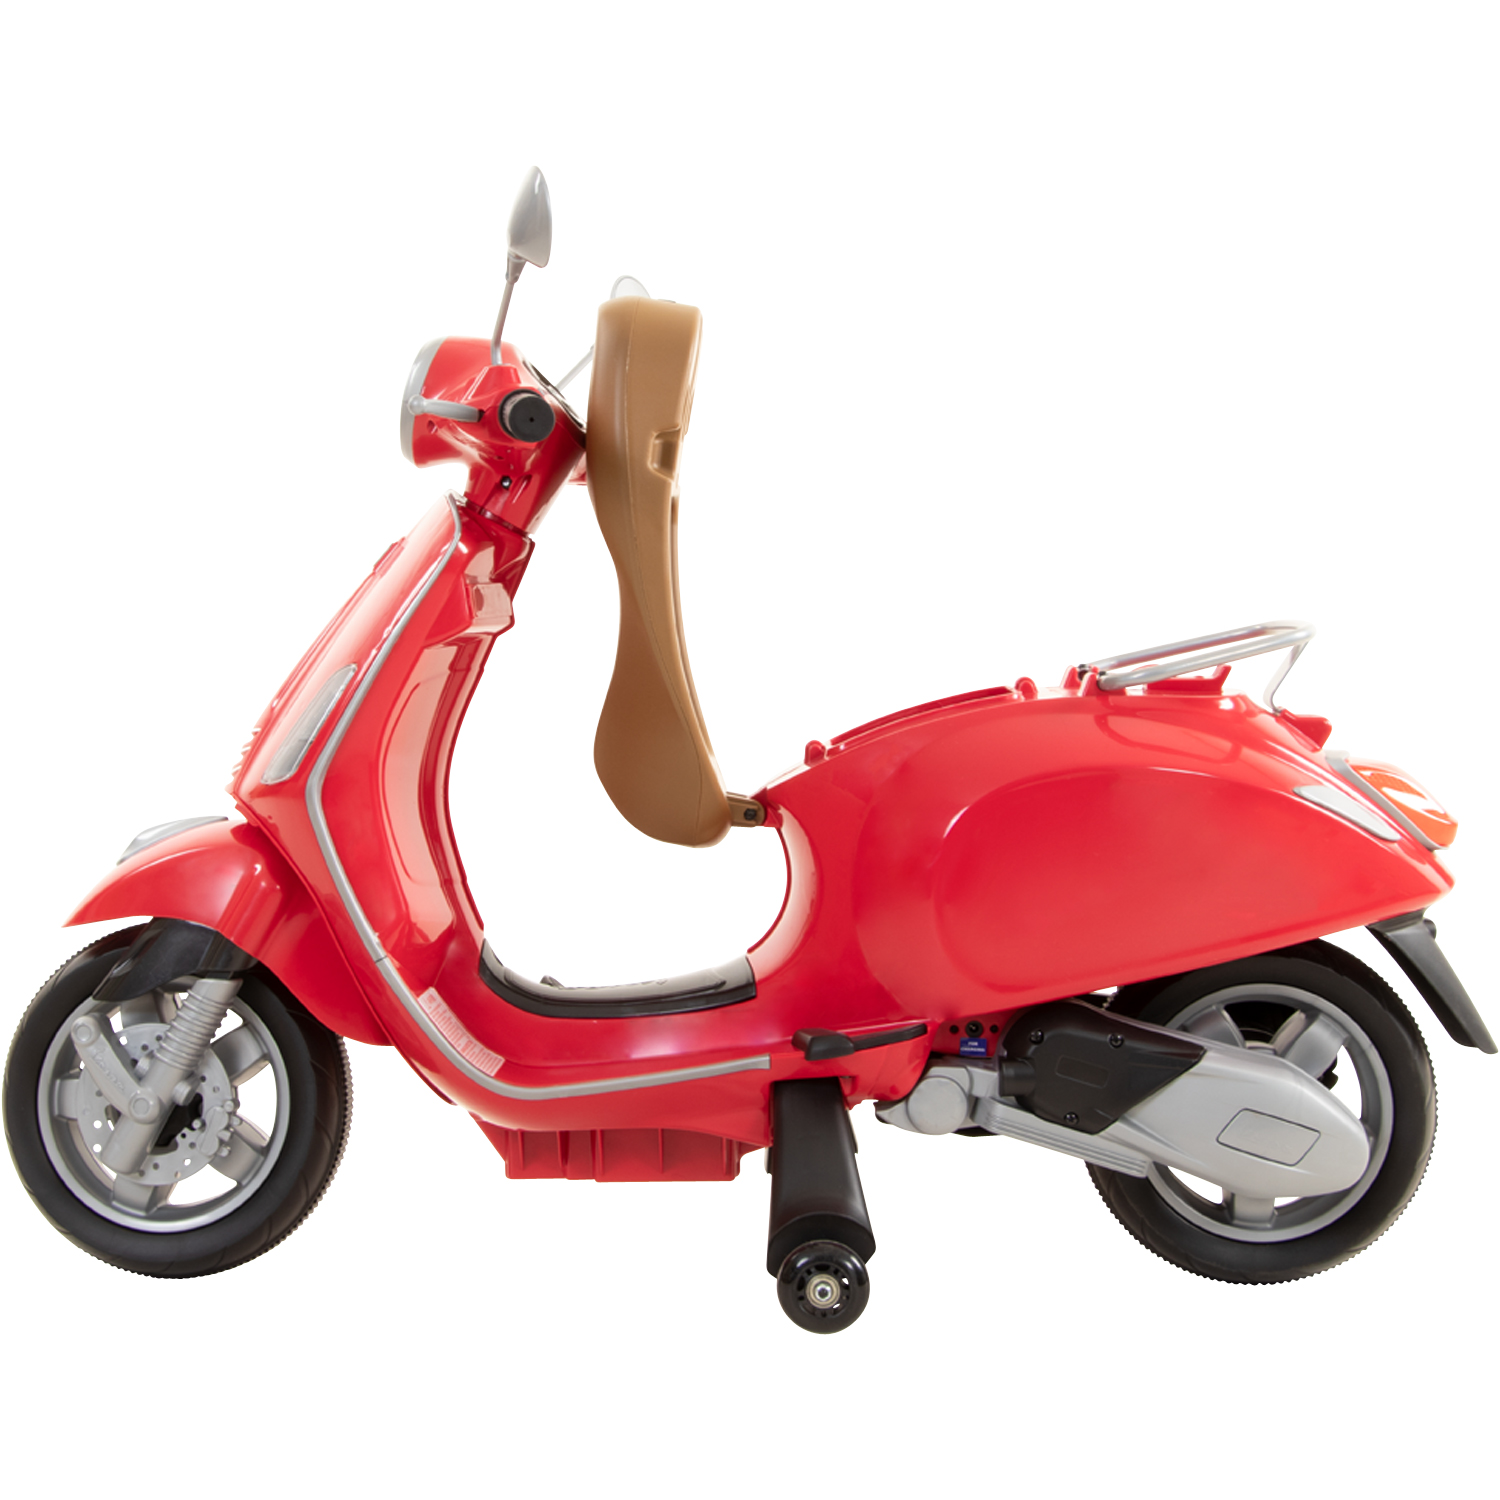 kinderfahrzeug vespa primavera 6v kinder scooter piaggio. Black Bedroom Furniture Sets. Home Design Ideas